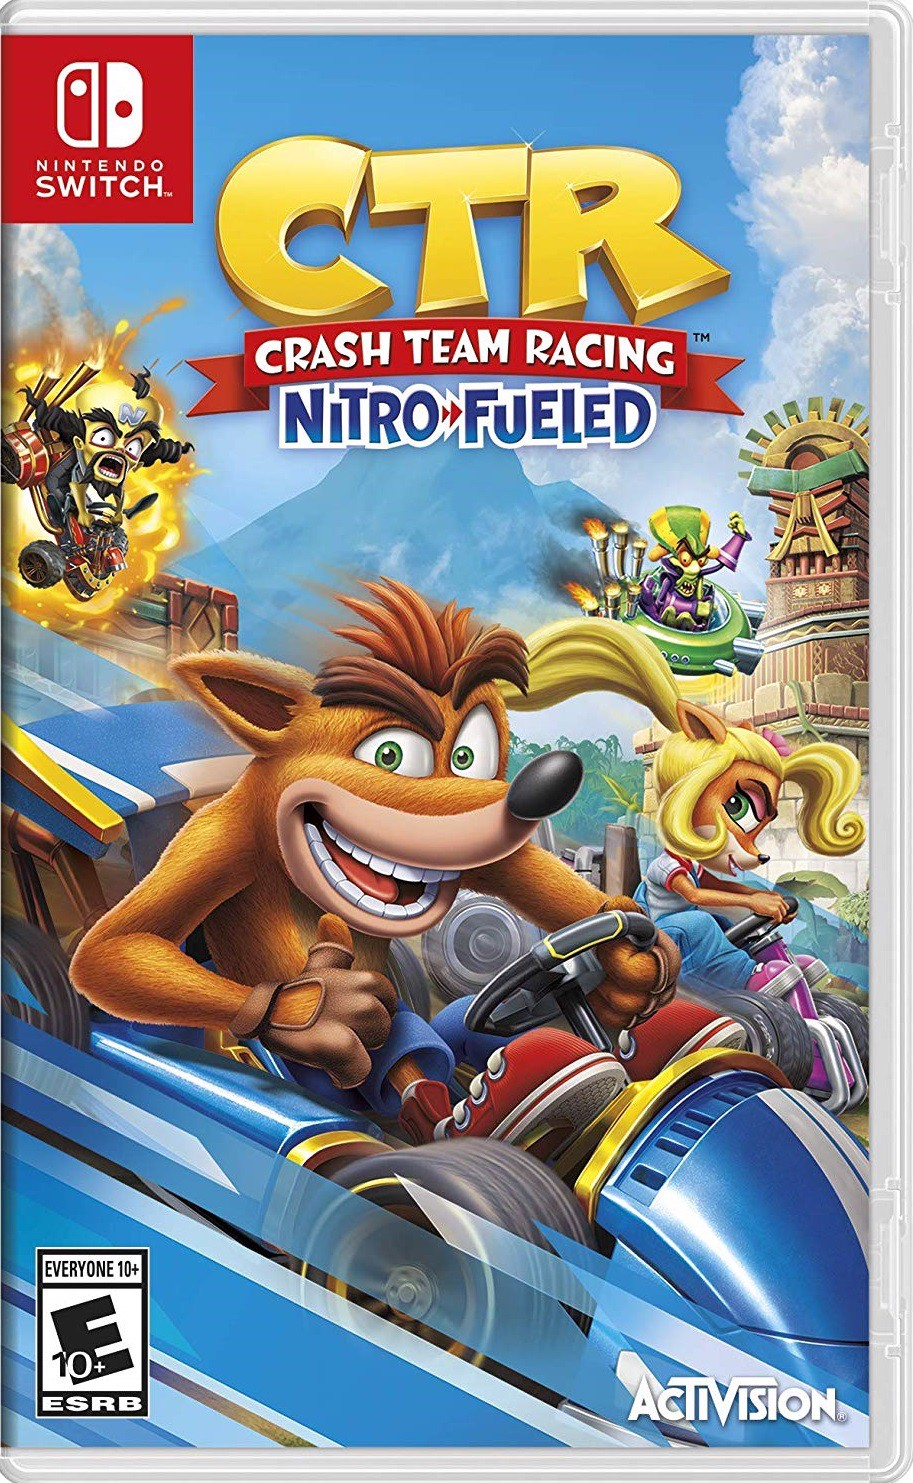 180 - Crash Team Racing - Nitro Fueled